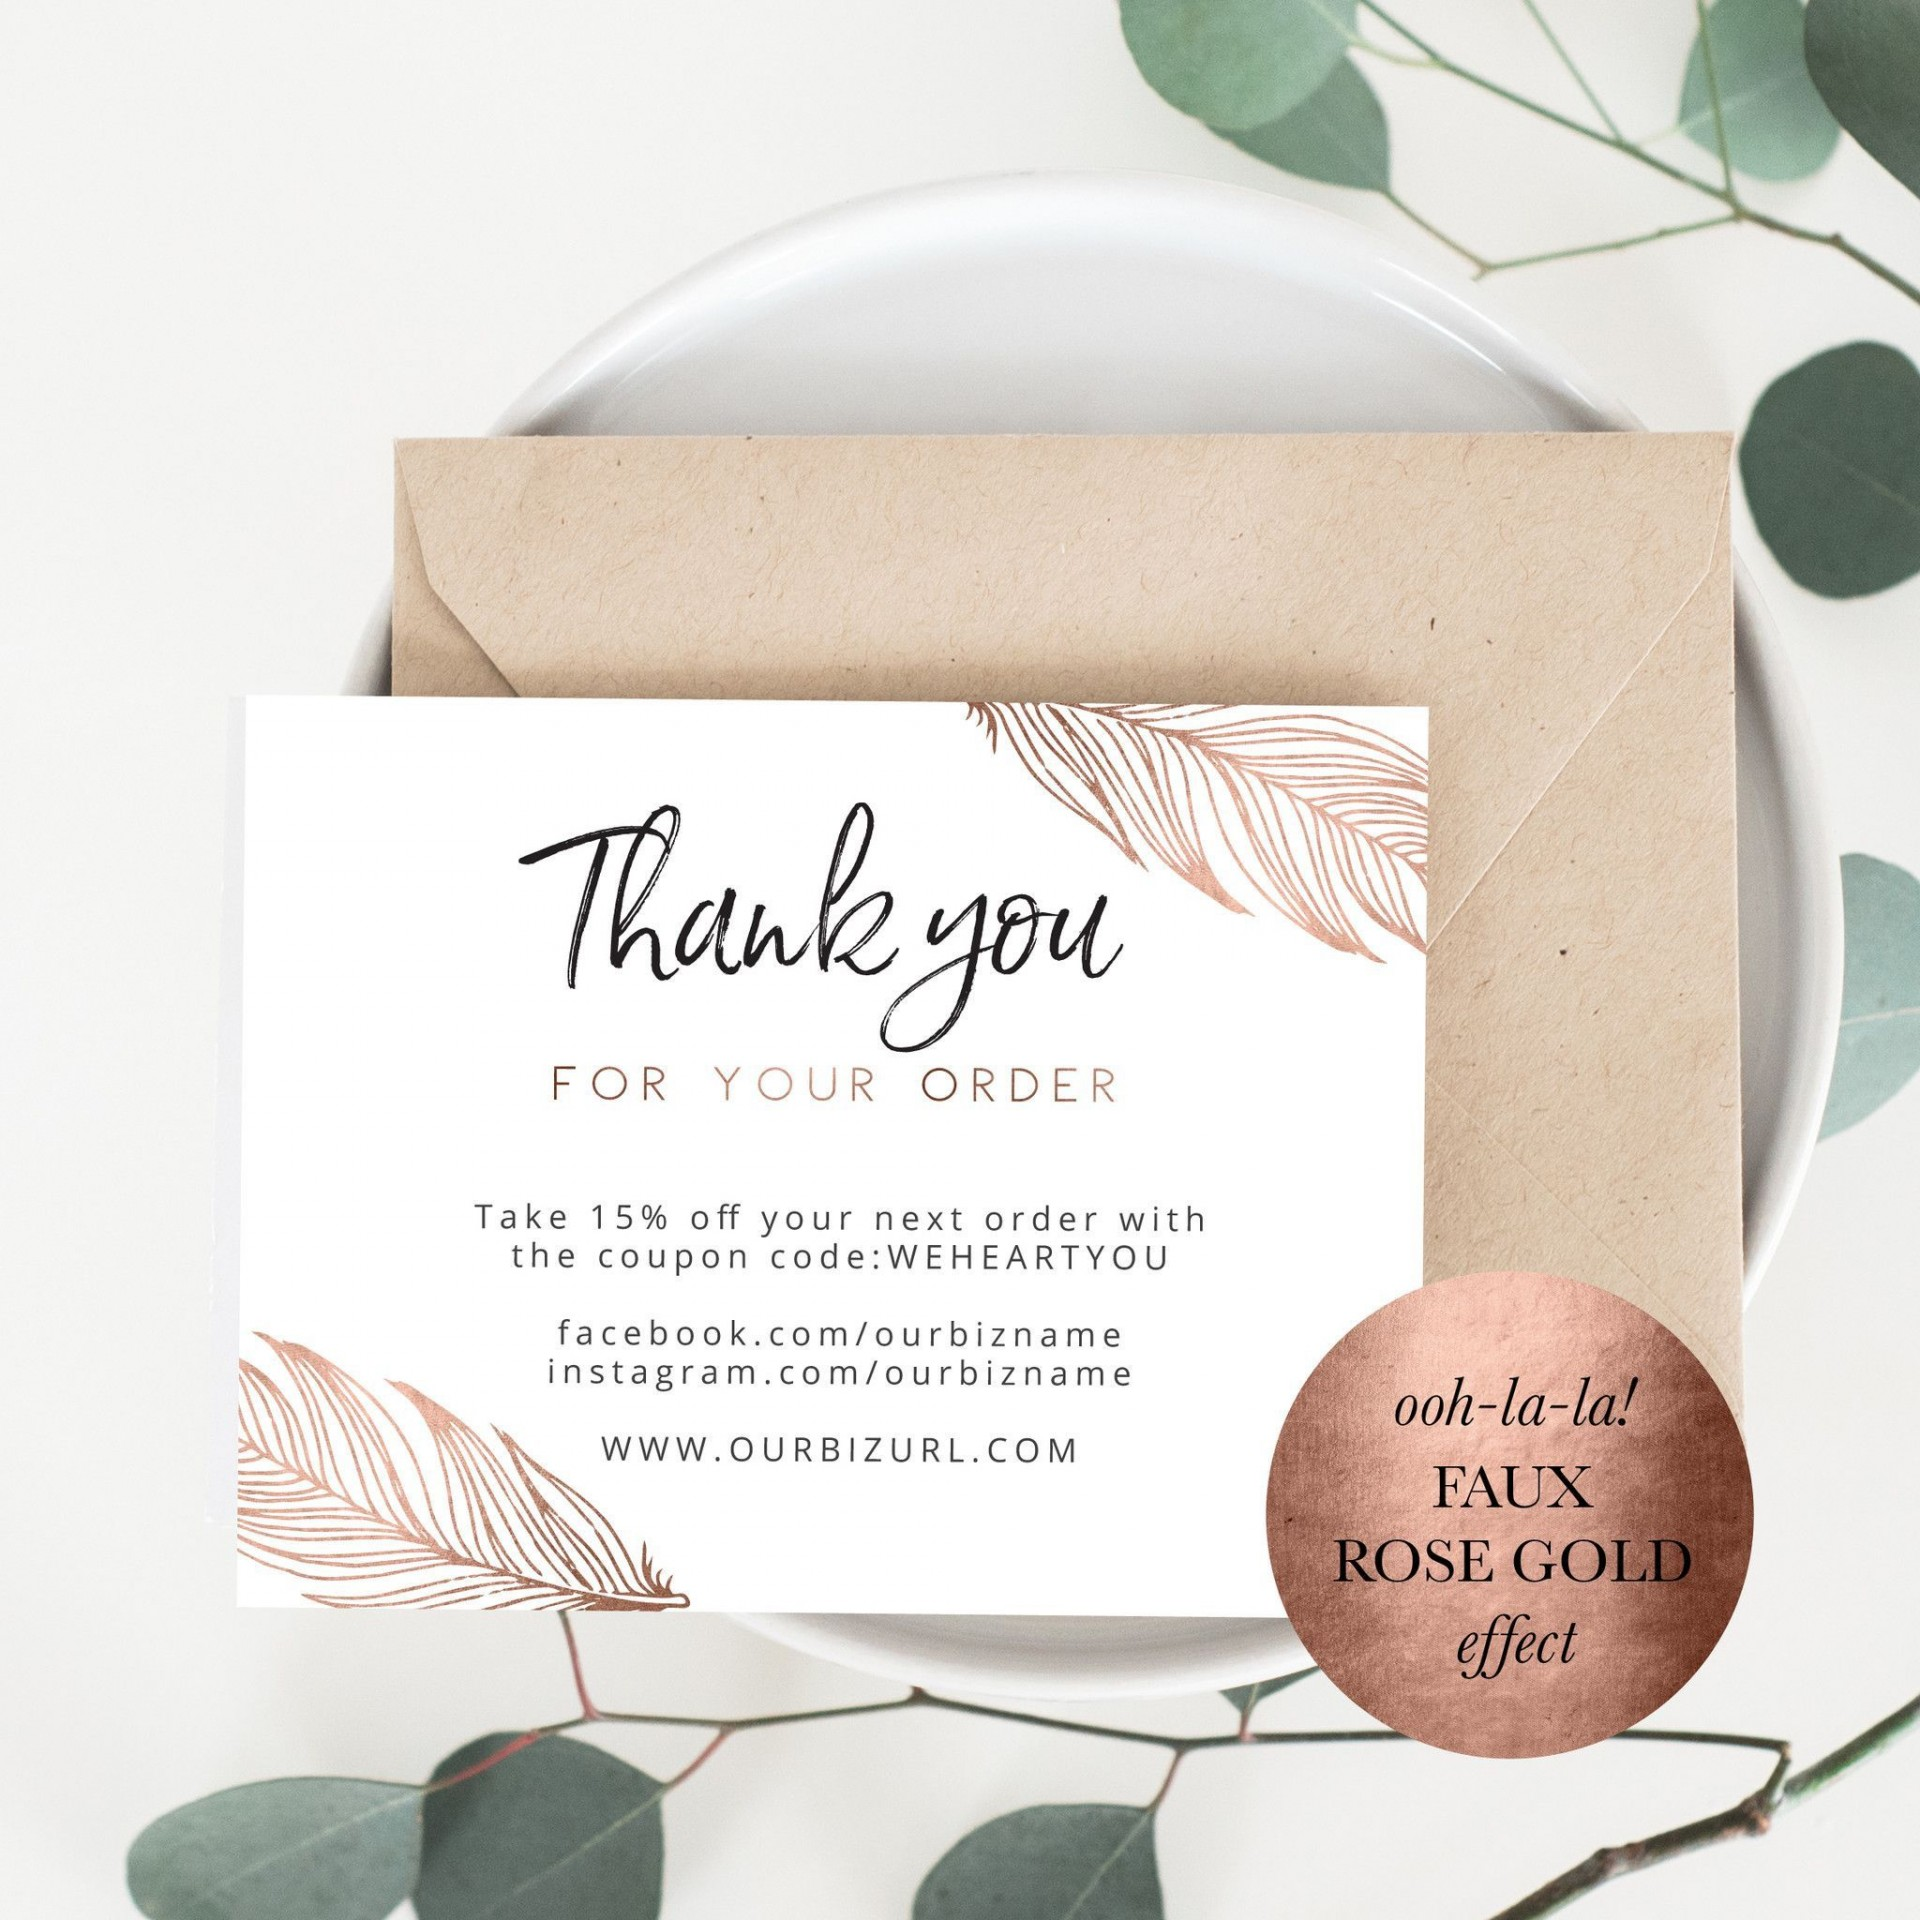 001 Dreaded Thank You Card Template High Resolution  Wedding Busines Word Free1920